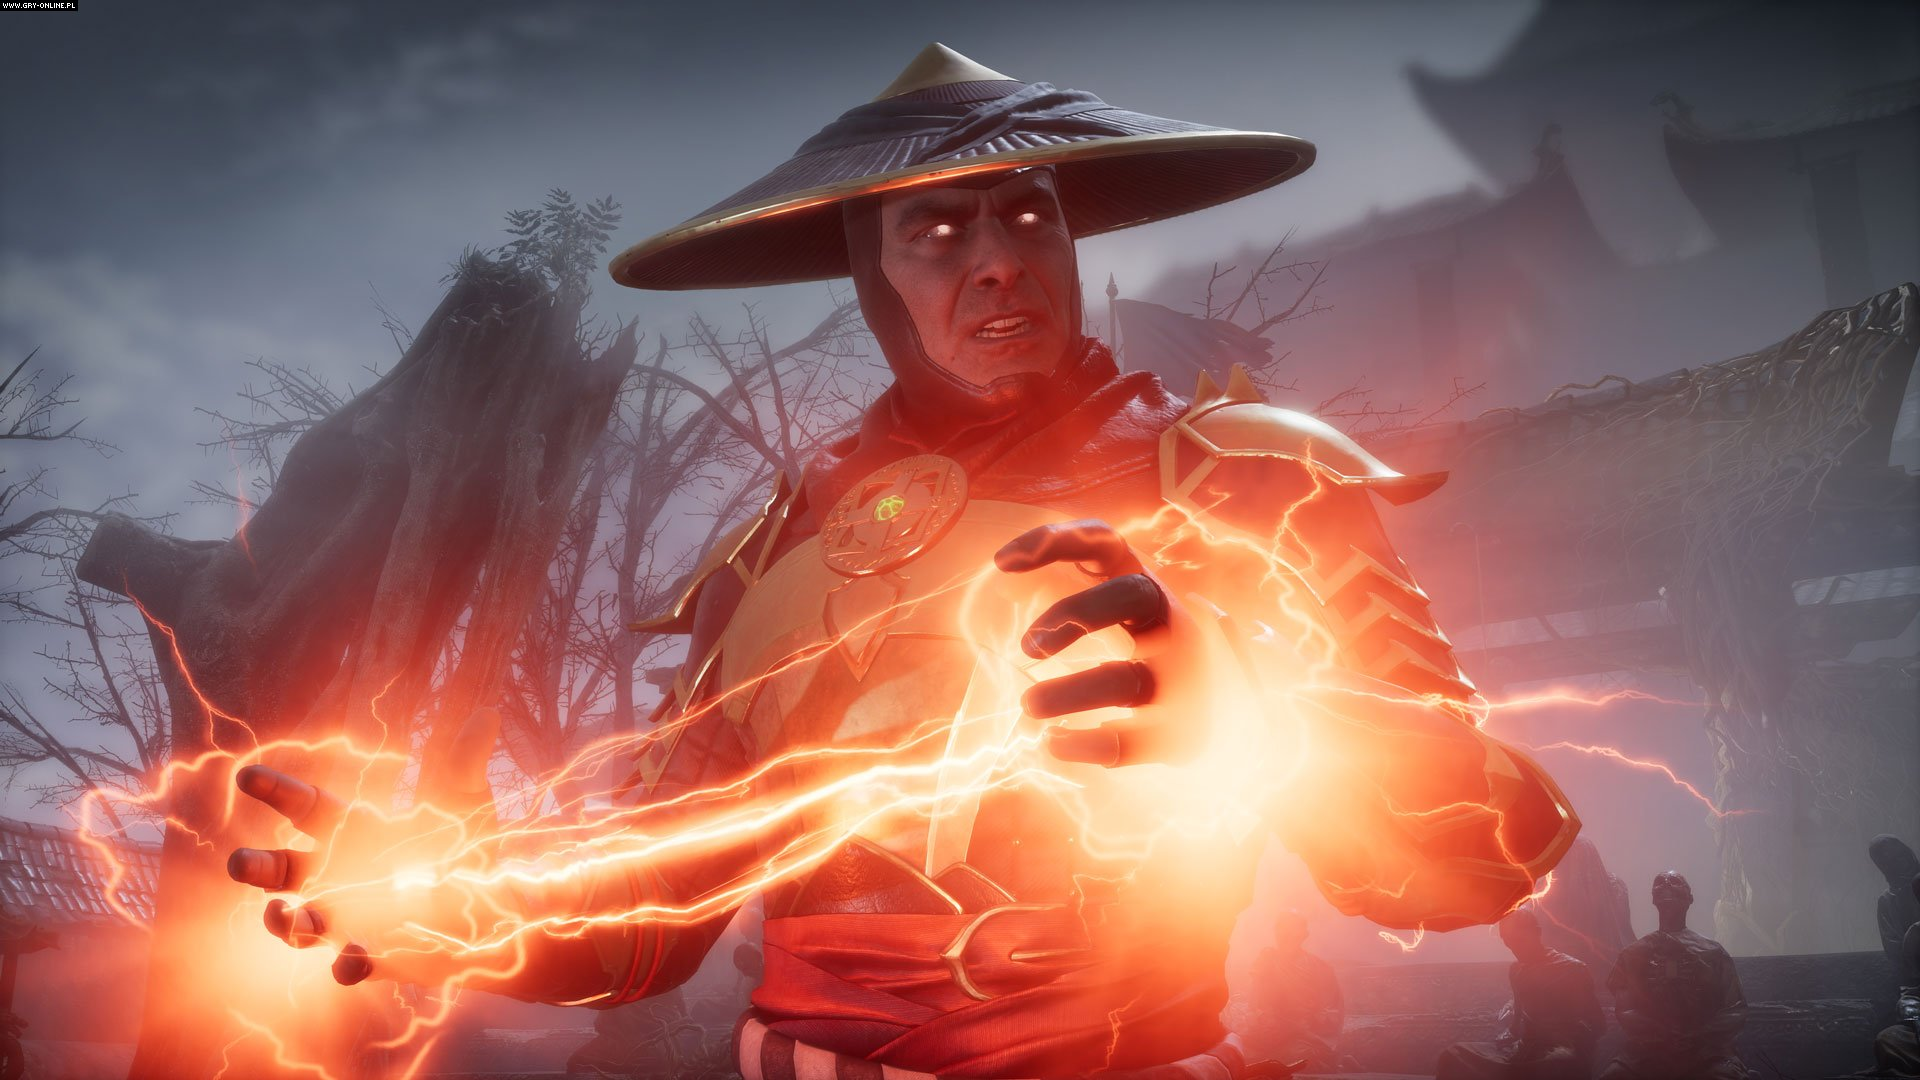 Mortal Kombat 11 PC, PS4, XONE, Switch Games Image 13/17, NetherRealm Studios , Warner Bros. Interactive Entertainment